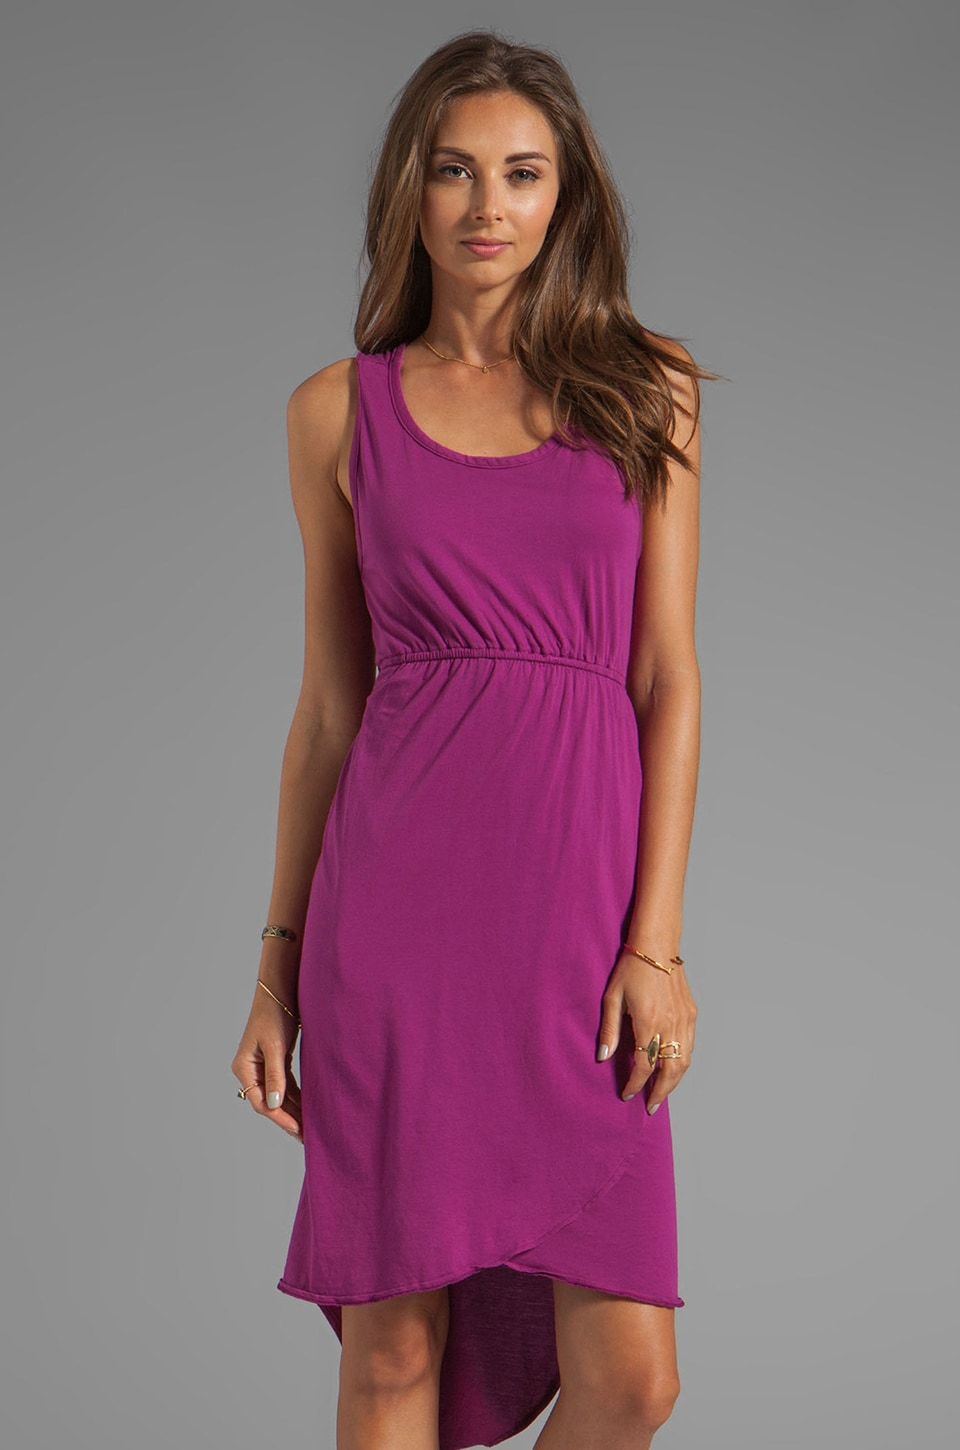 Bobi Supreme Jersey Asymmetric Hem Dress in Maui Wowi